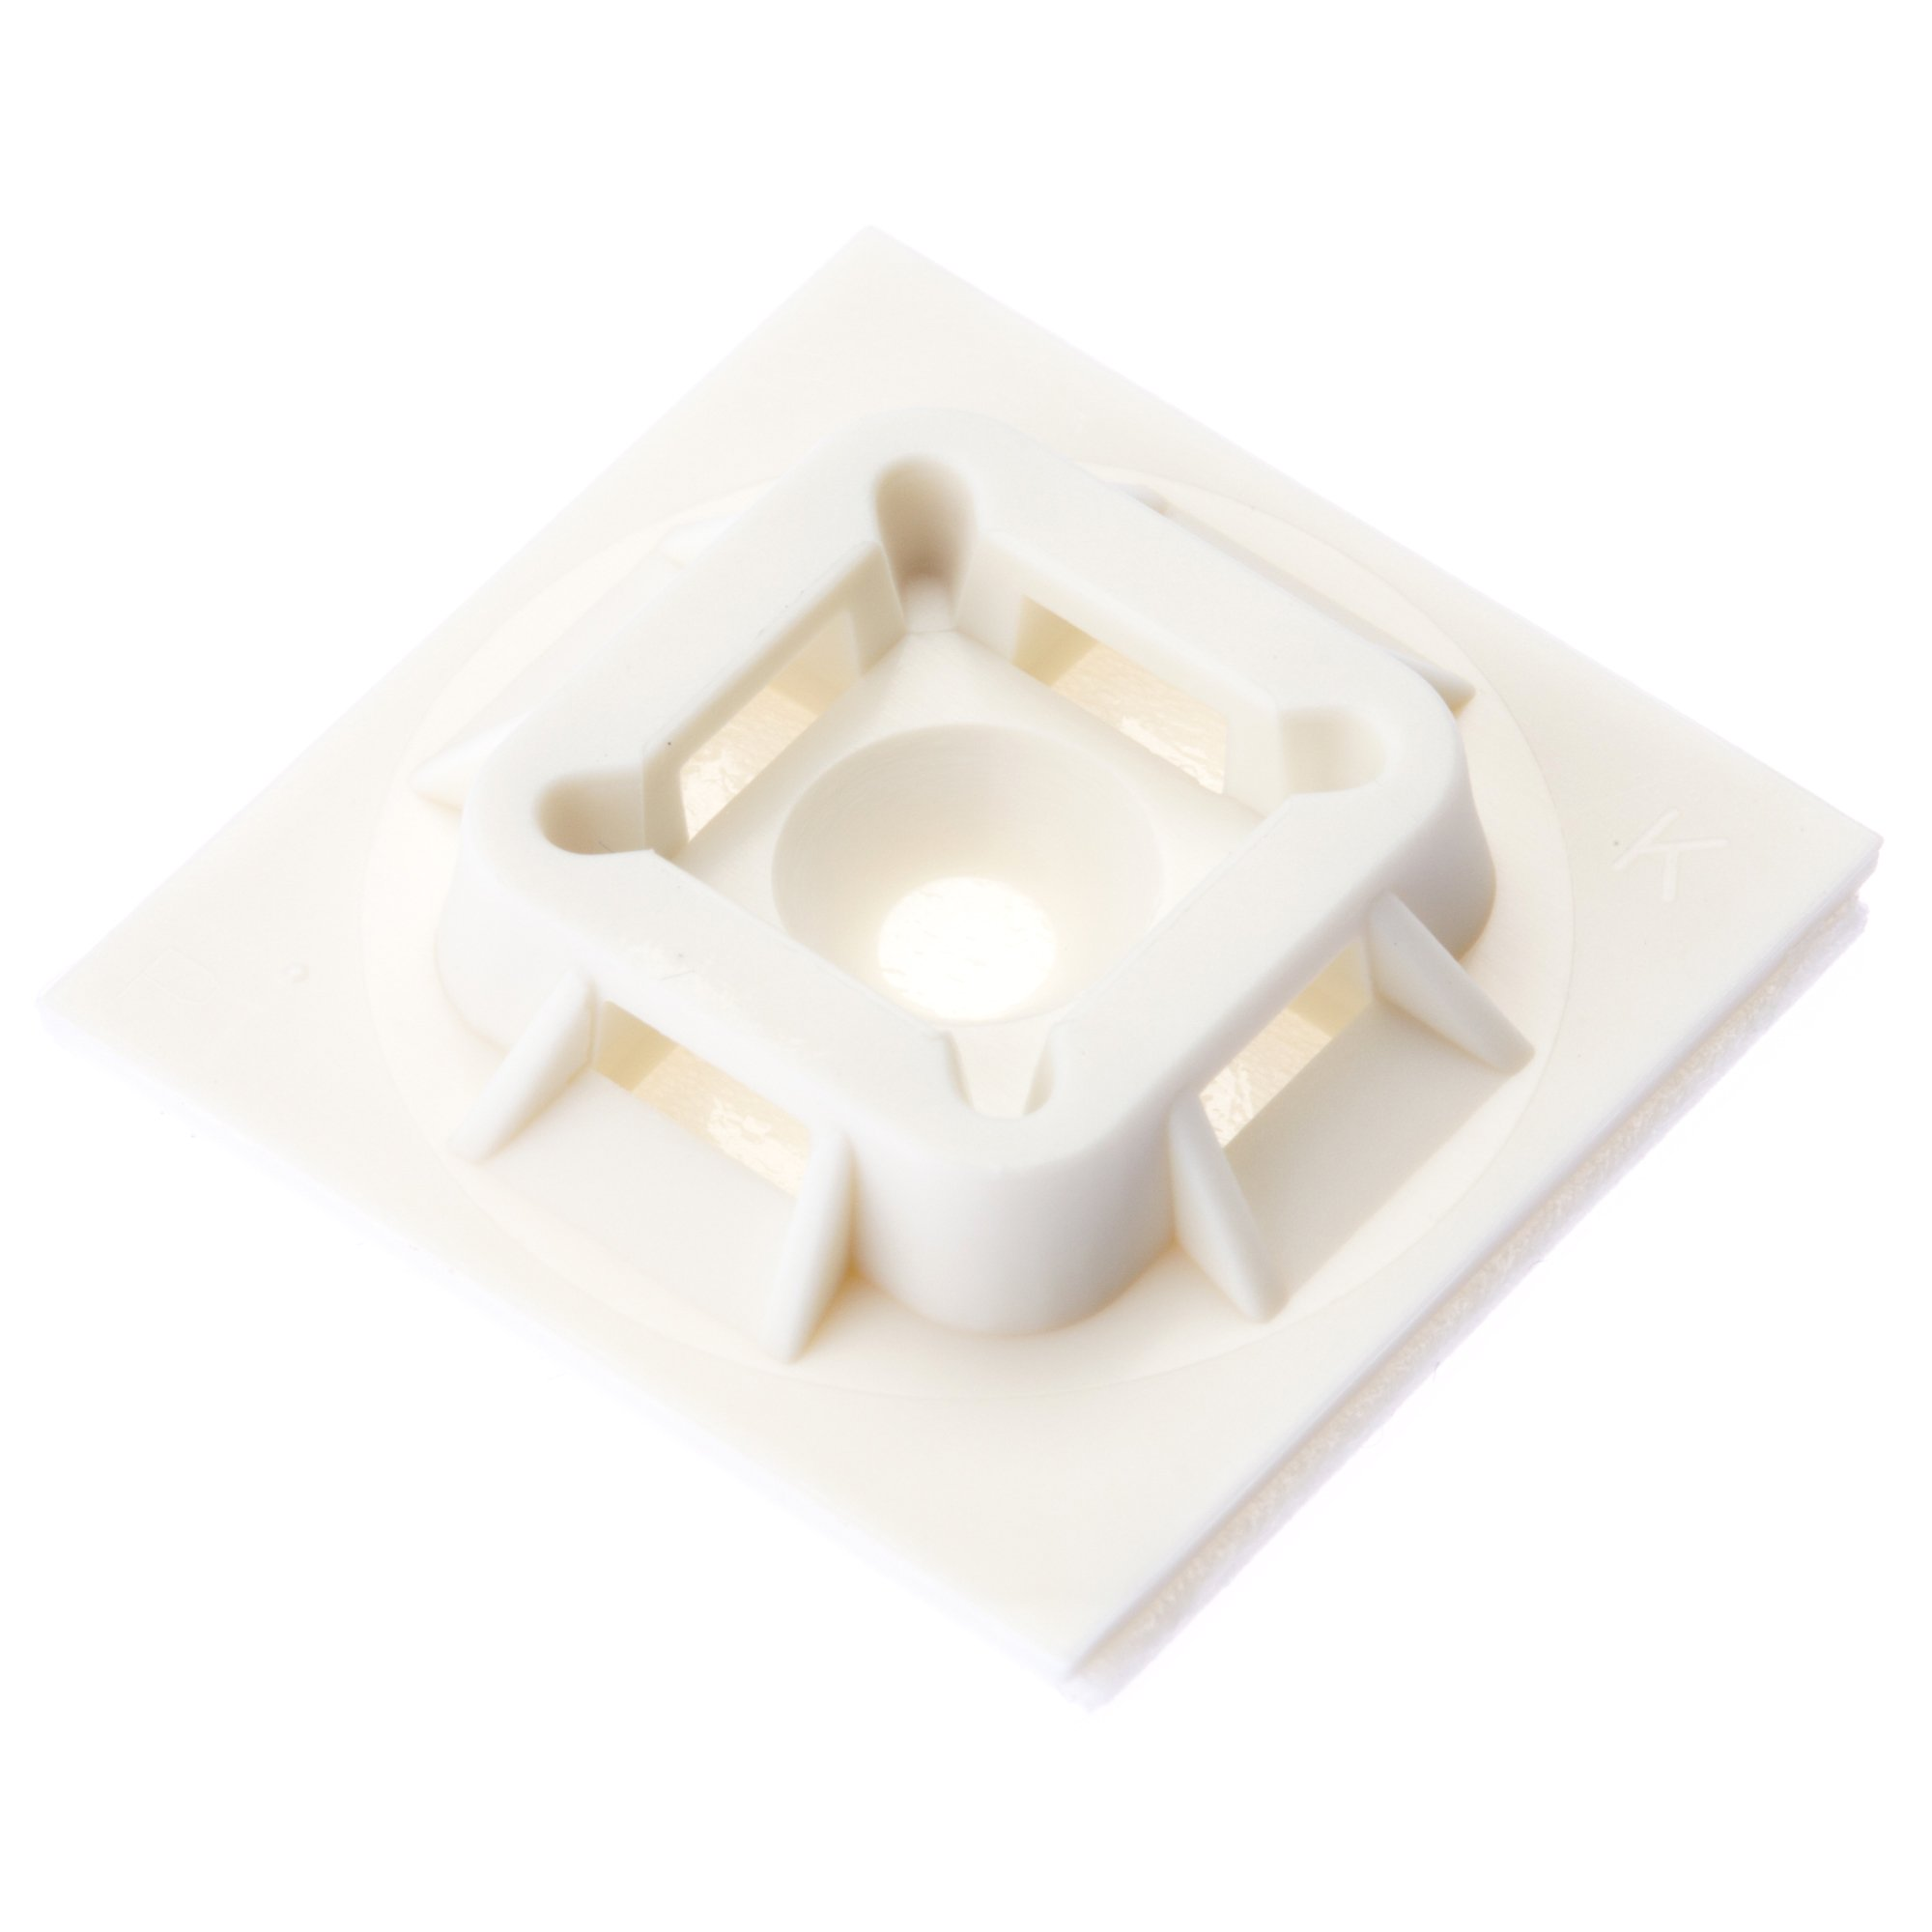 Panduit ABM100-A-D Cable Tie Mount, Adhesive Backed, 4-Way, Nylon 6.6, White (500-Pack)